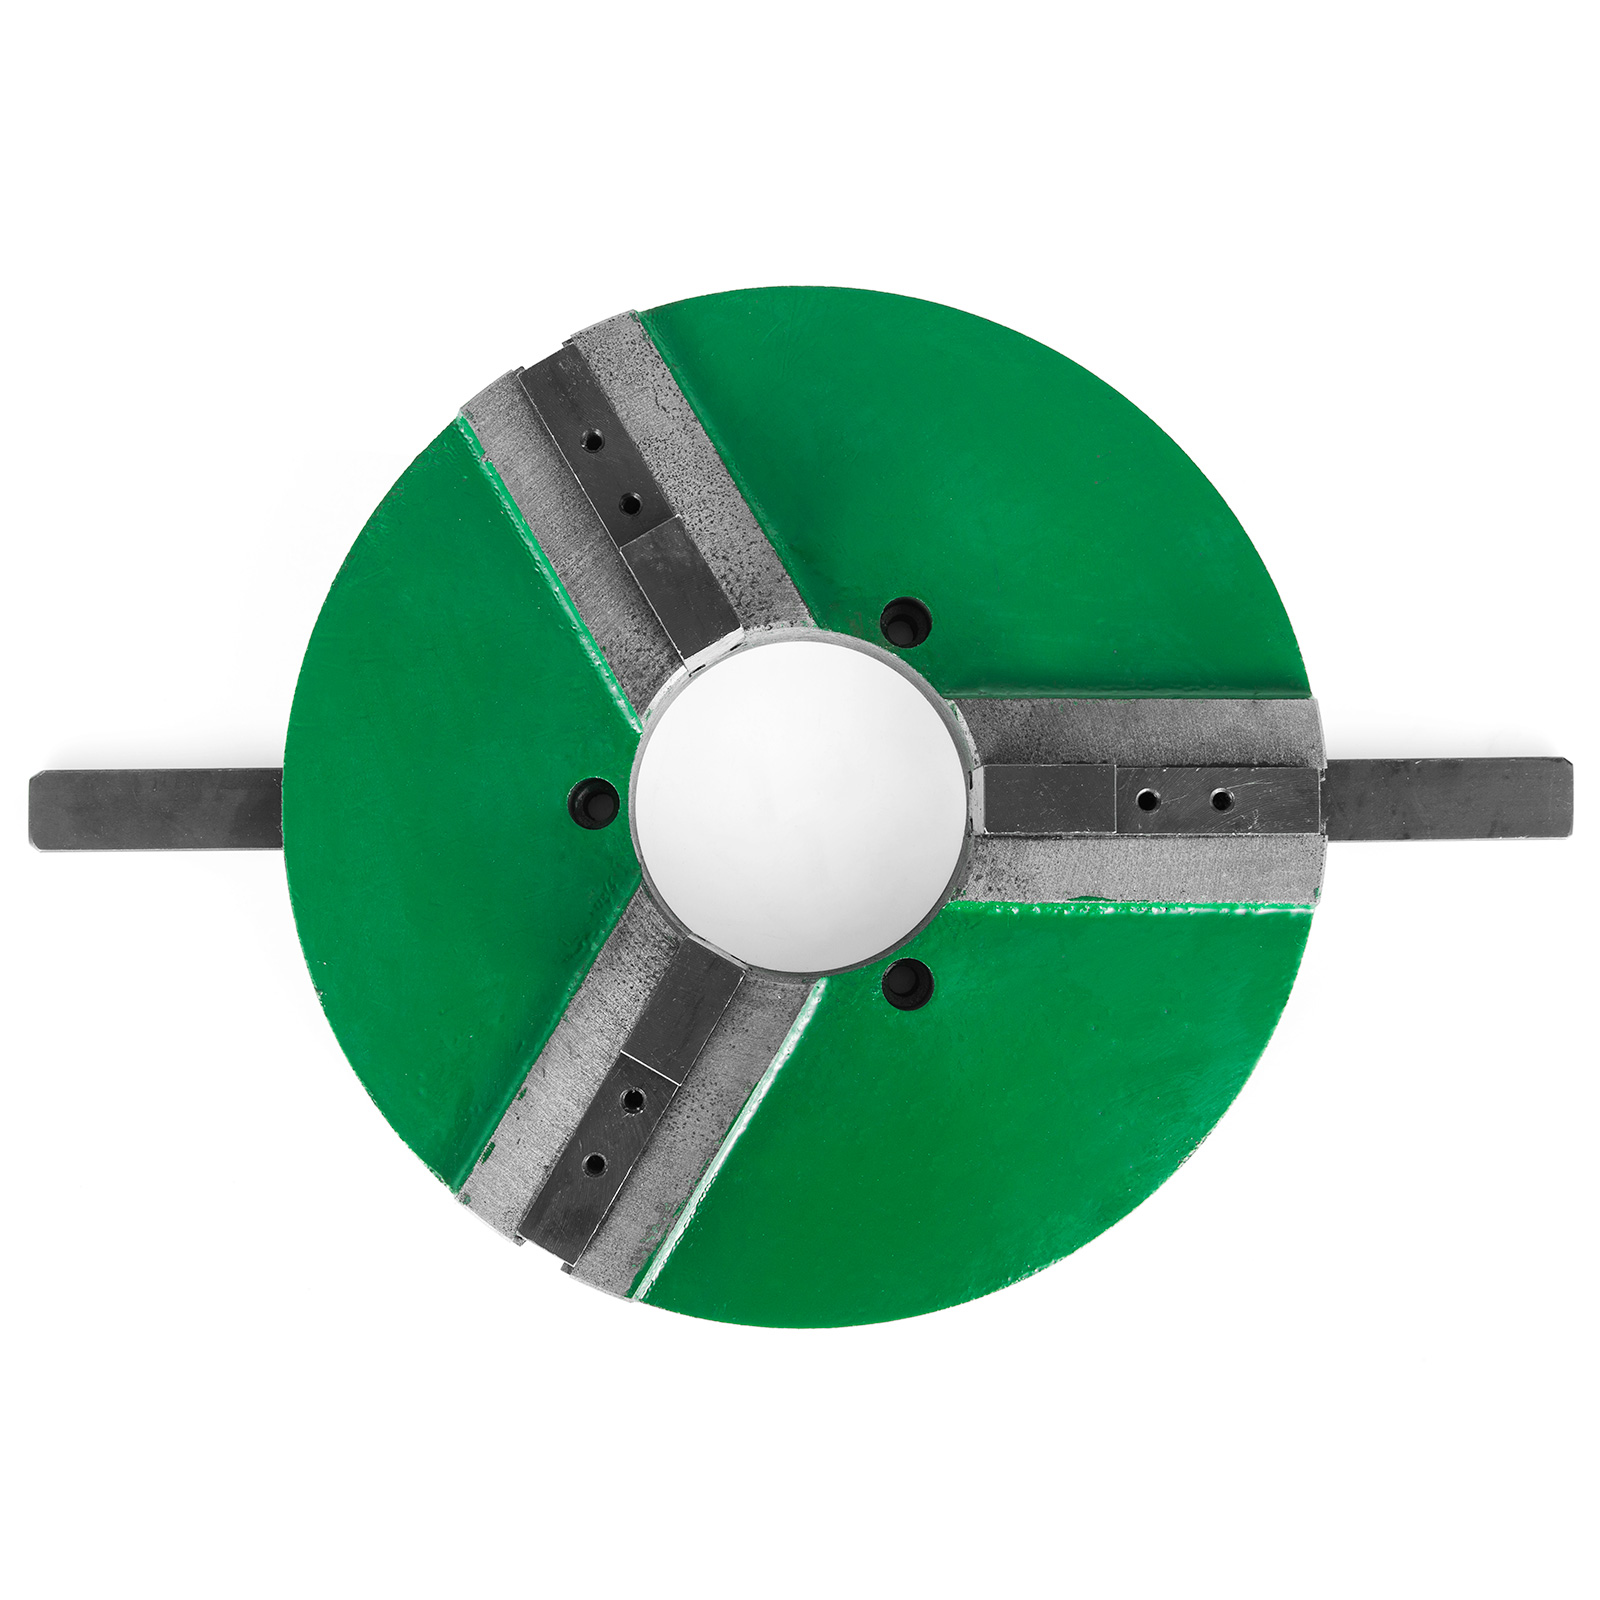 3-Jaw-Table-Chuck-Reversible-WP-200-WP-300-Clamping-Self-Centering-Welding thumbnail 30